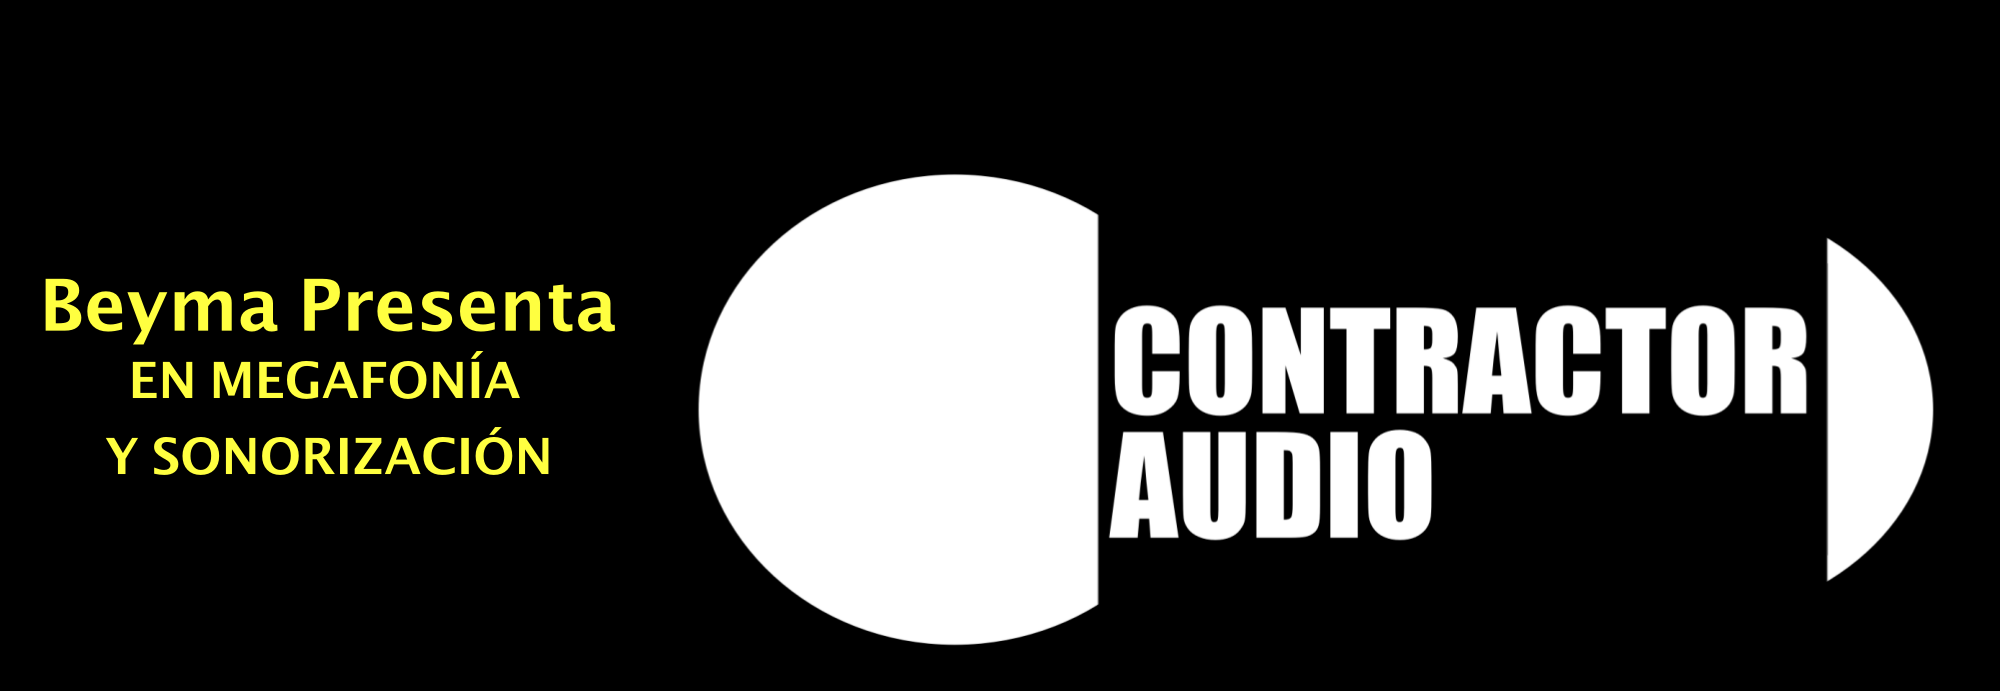 CONTRACTO AUDIO